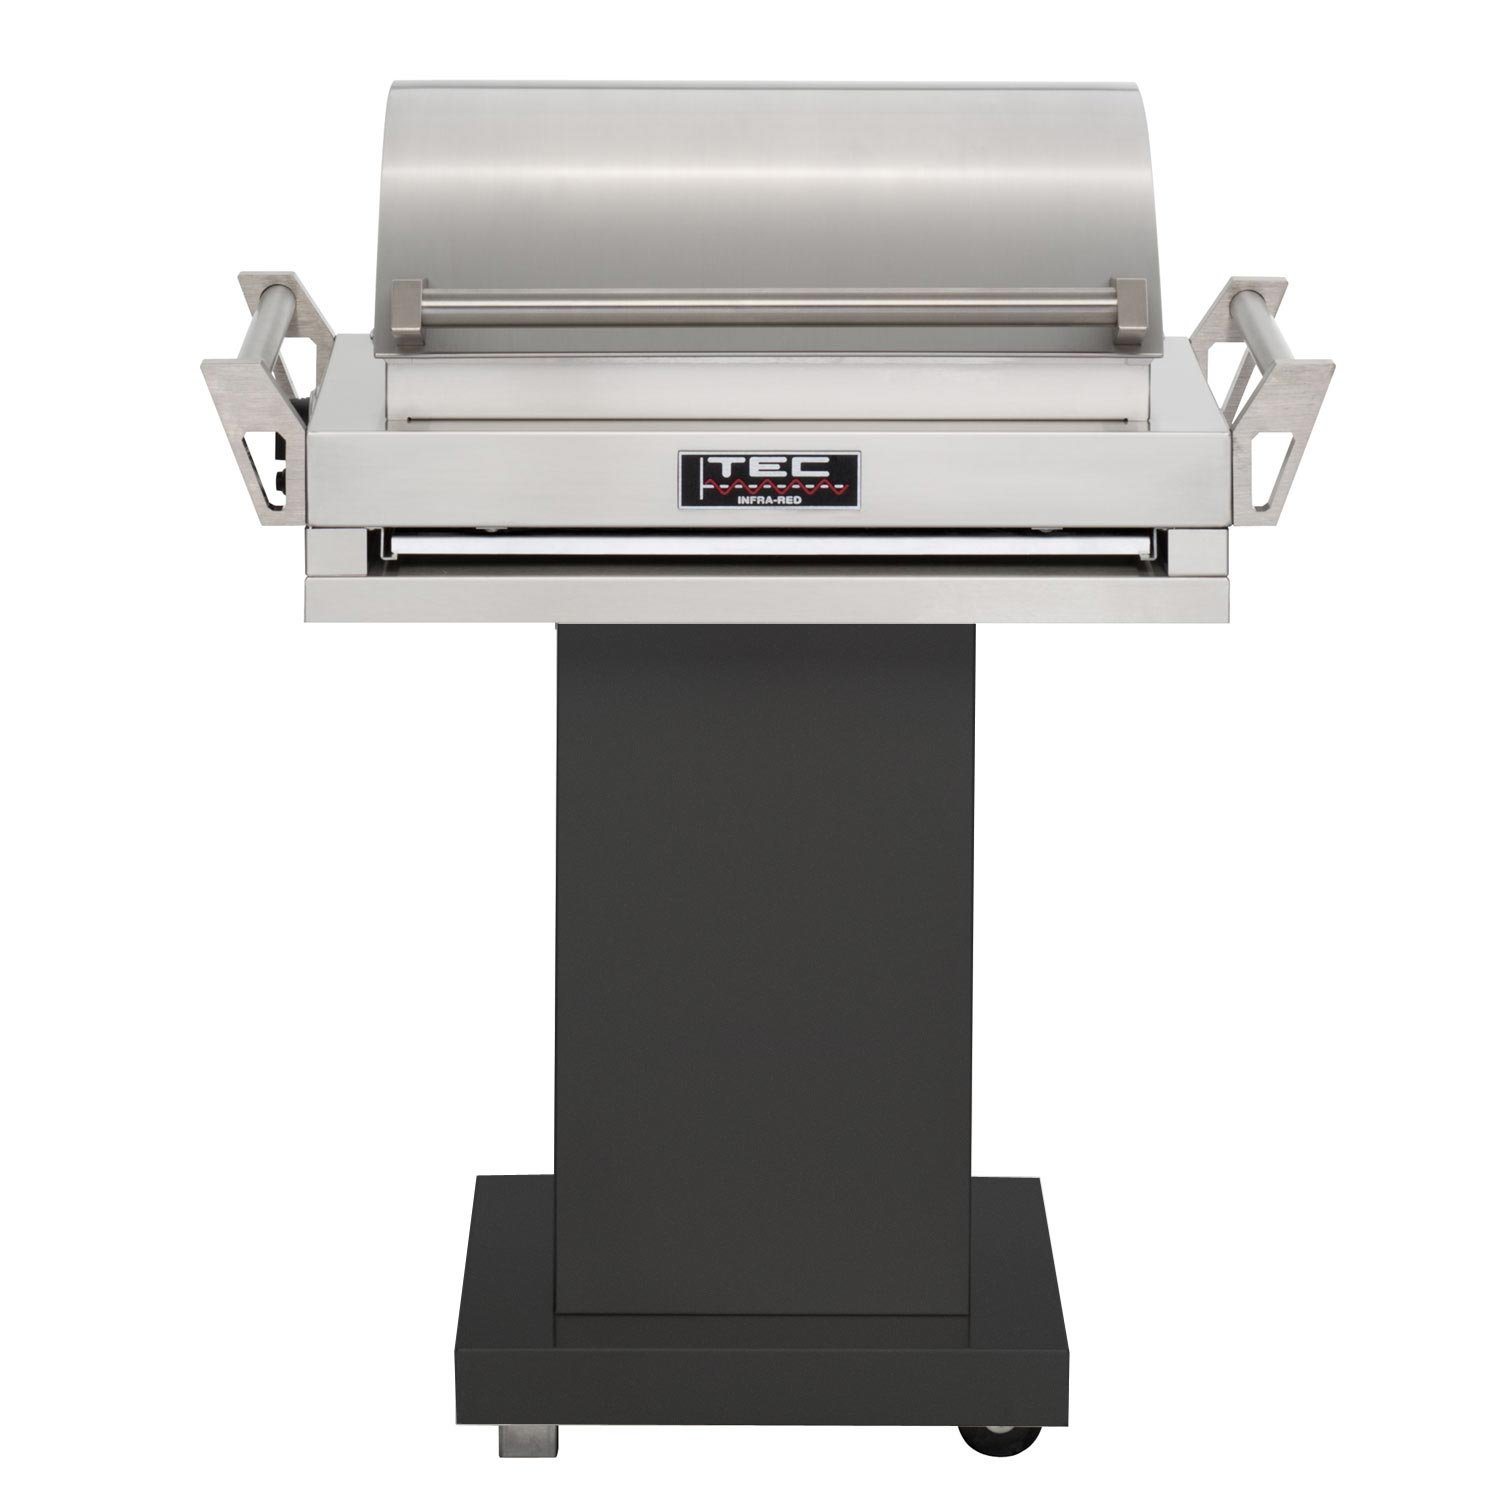 grill on covers store the post cover outdoor pedestal c inch category now premium cart at american accessories freestanding gas shop grilling for or